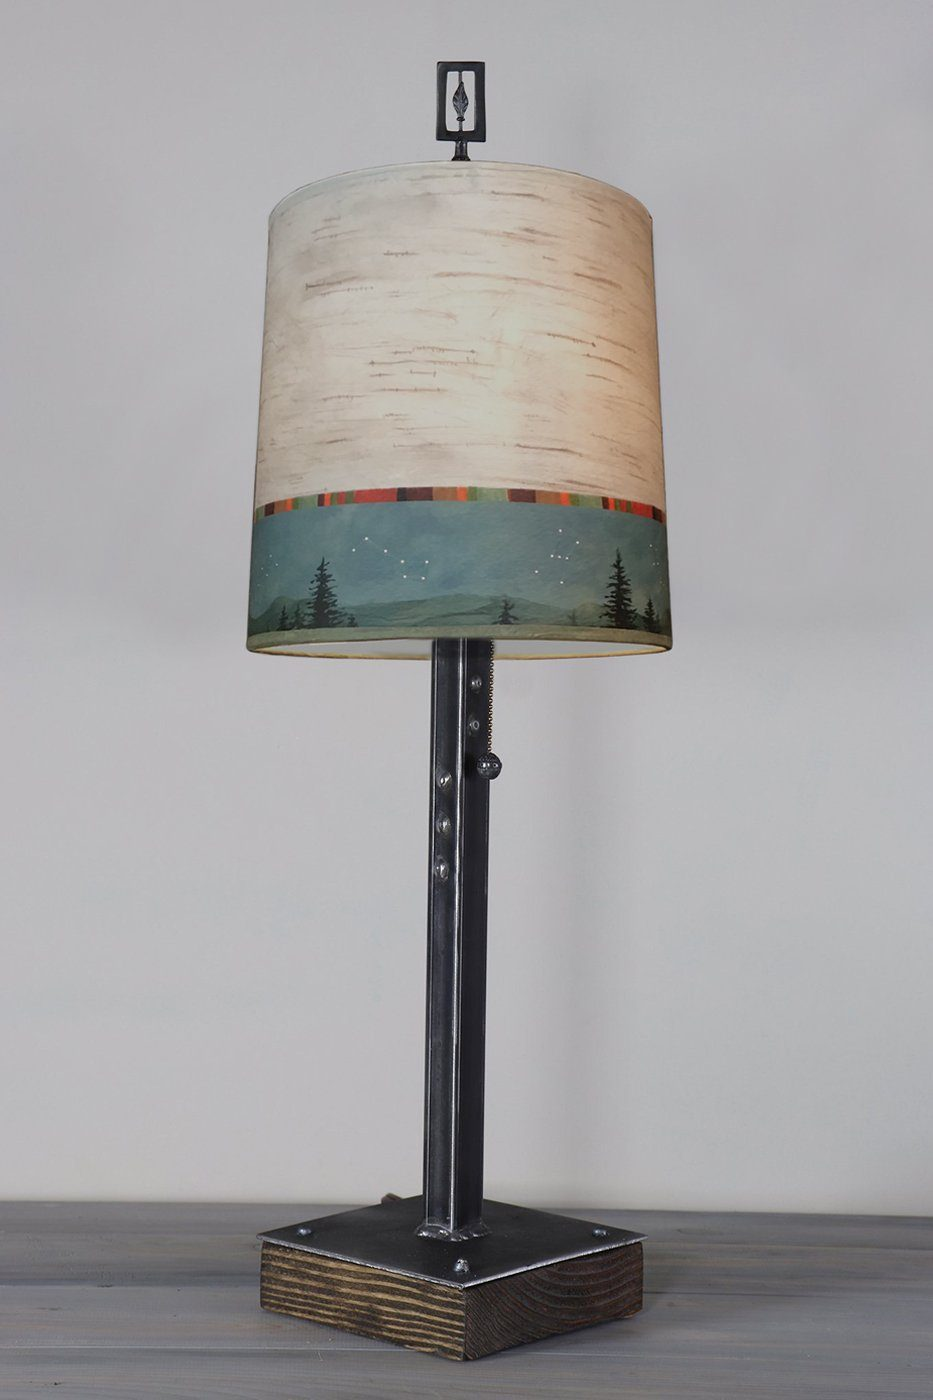 Steel Table Lamp on Wood with Medium Drum Shade in Birch Midnight